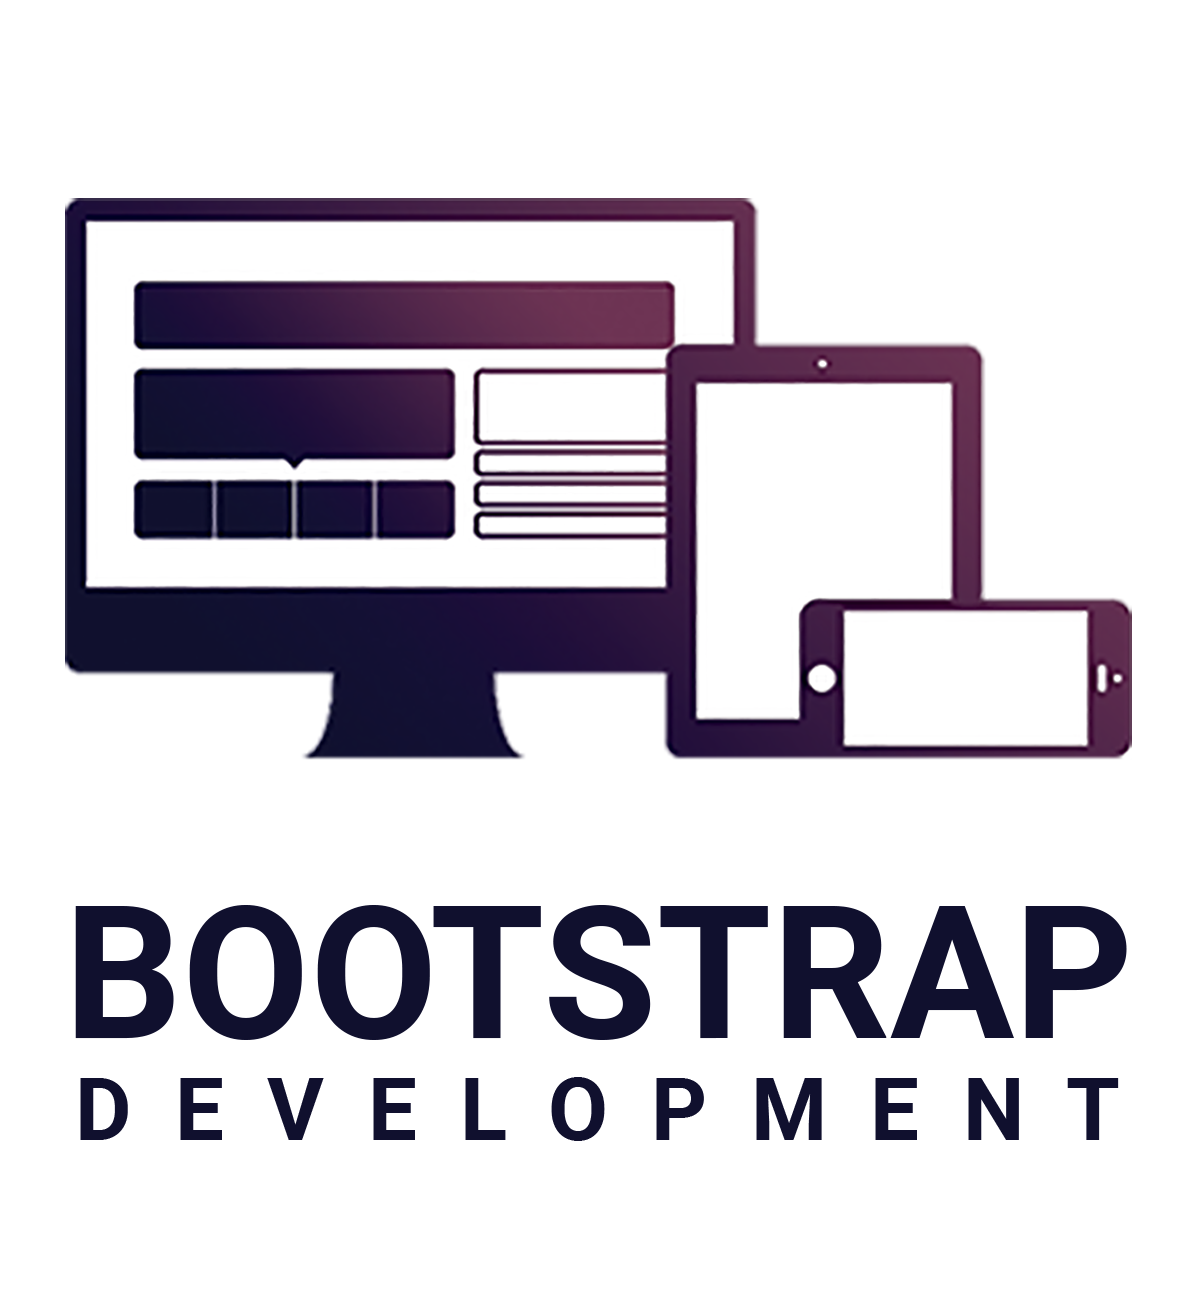 http://arksstechnologies.com/wp-content/upload/2018/06/Bootstrap.png